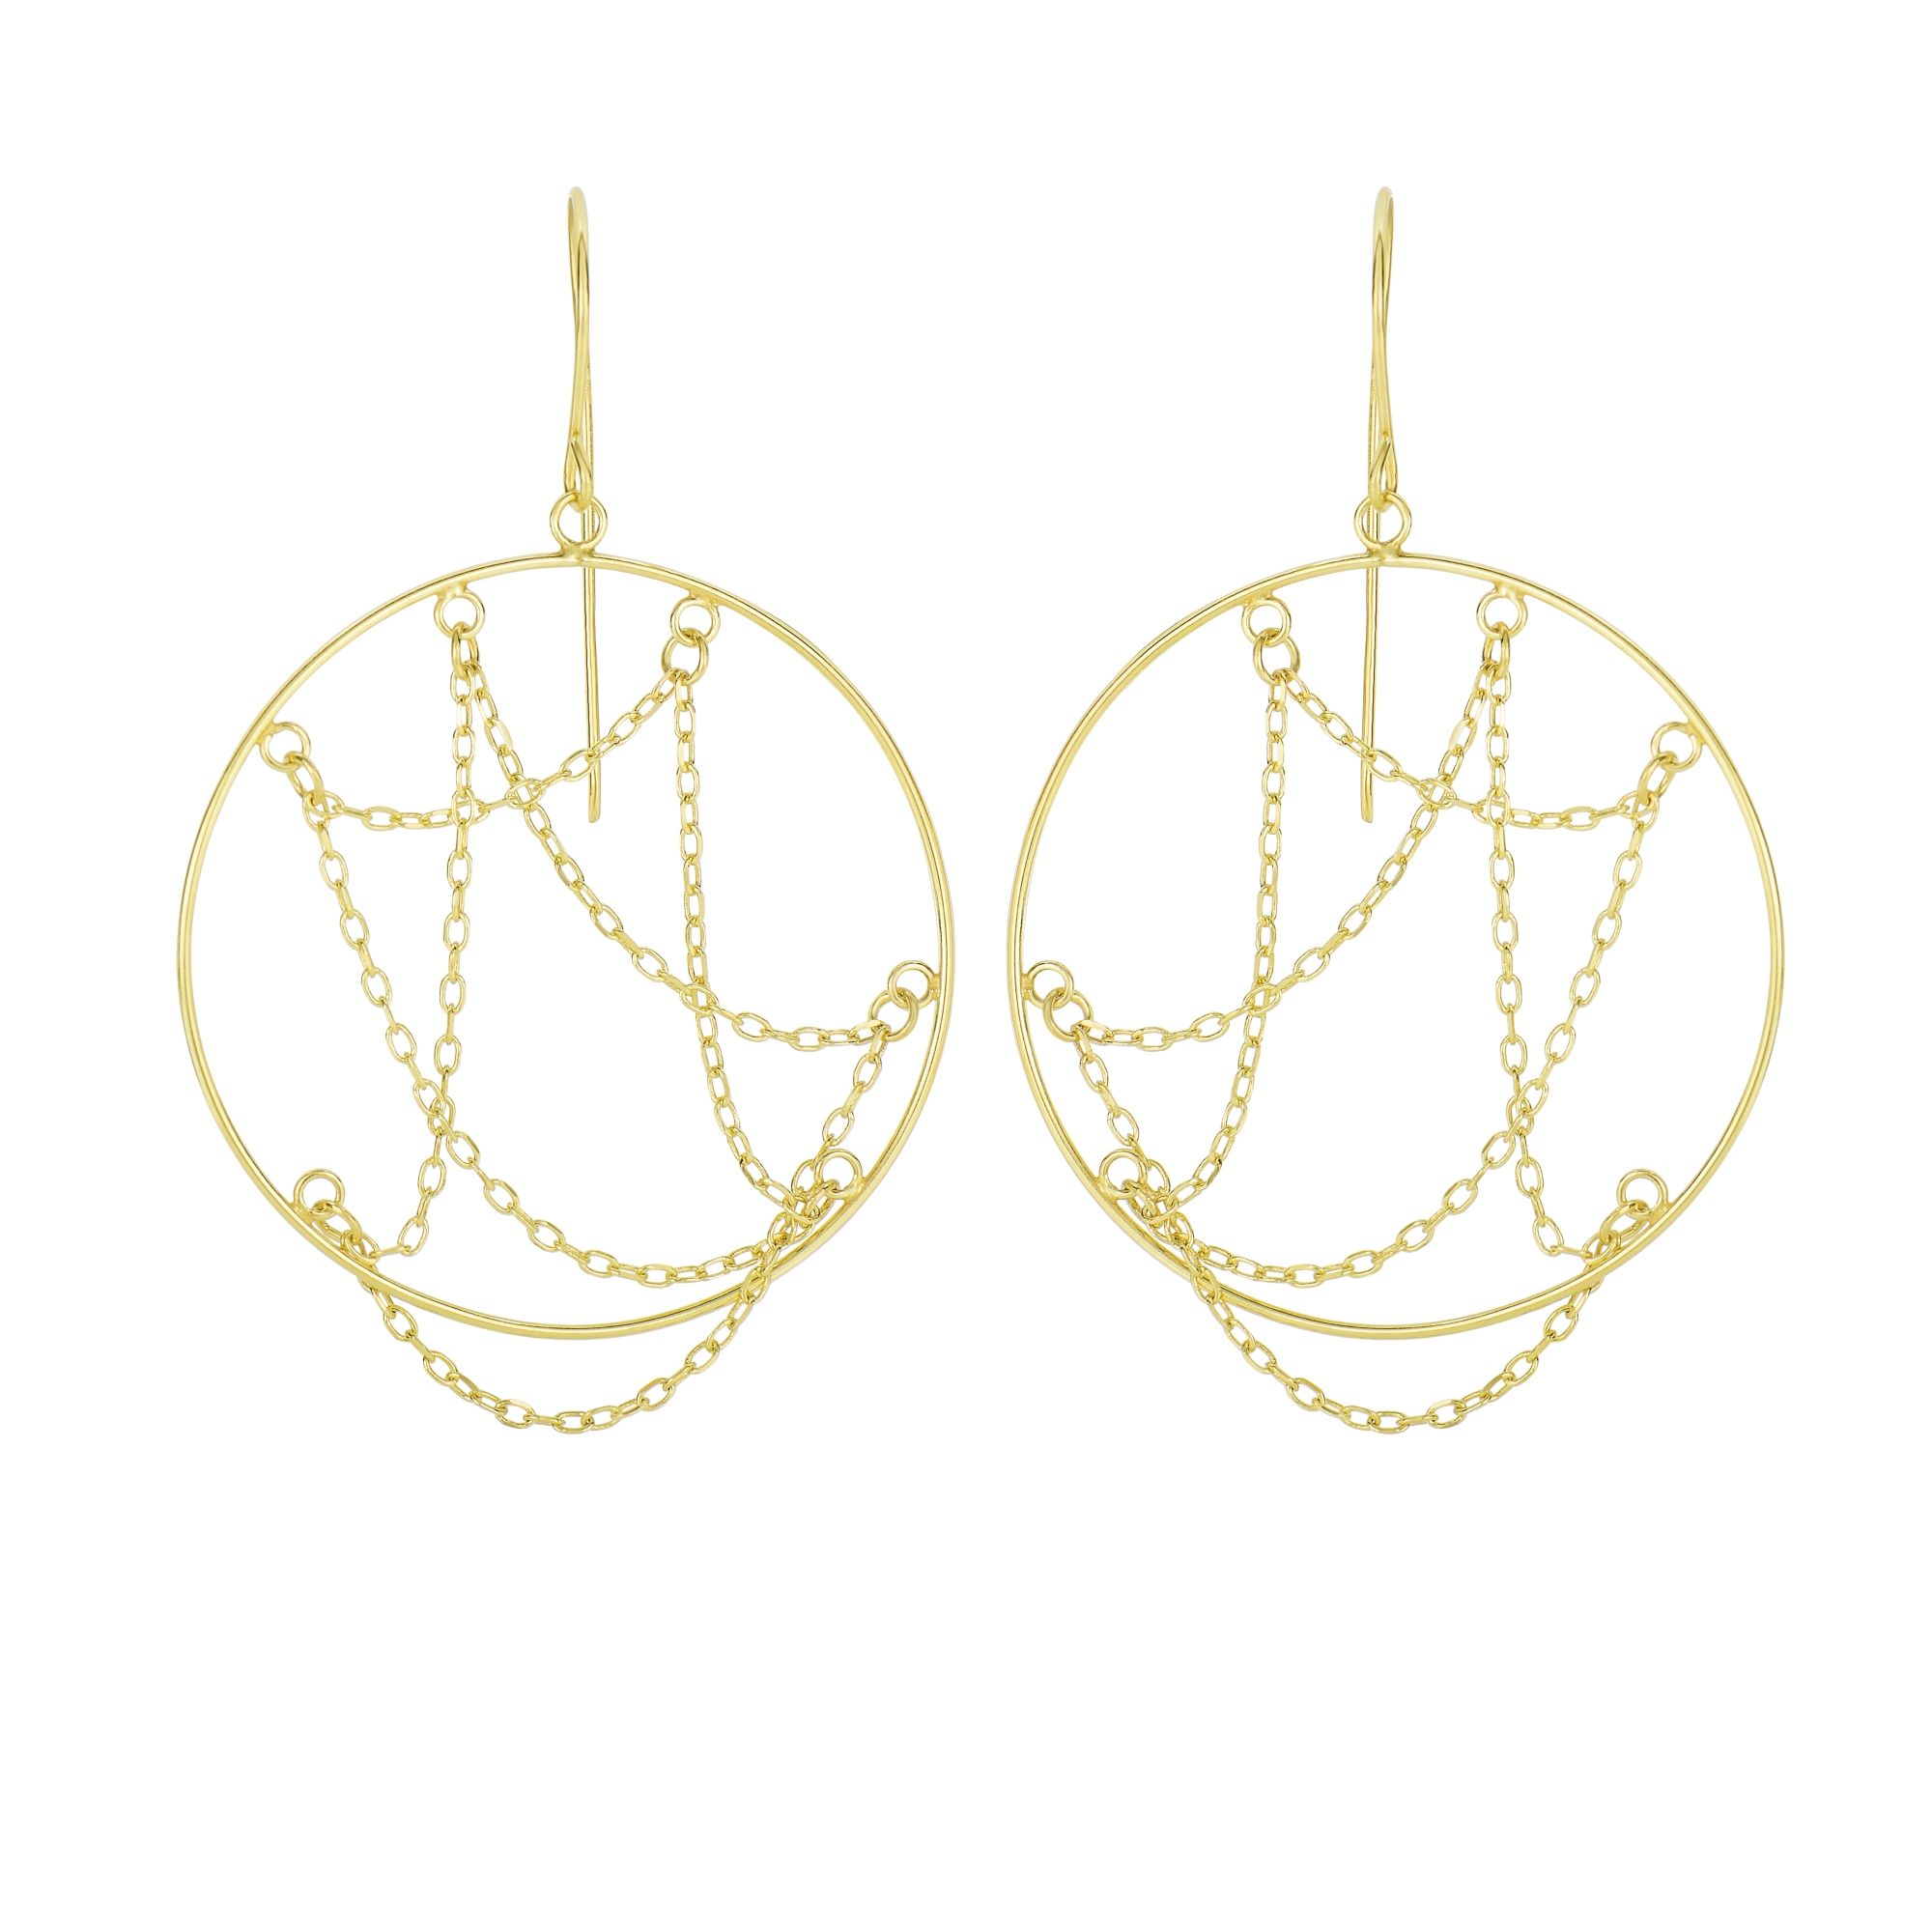 14 Karat Yellow Gold Dangling Chain Open Circle Drop Earrings